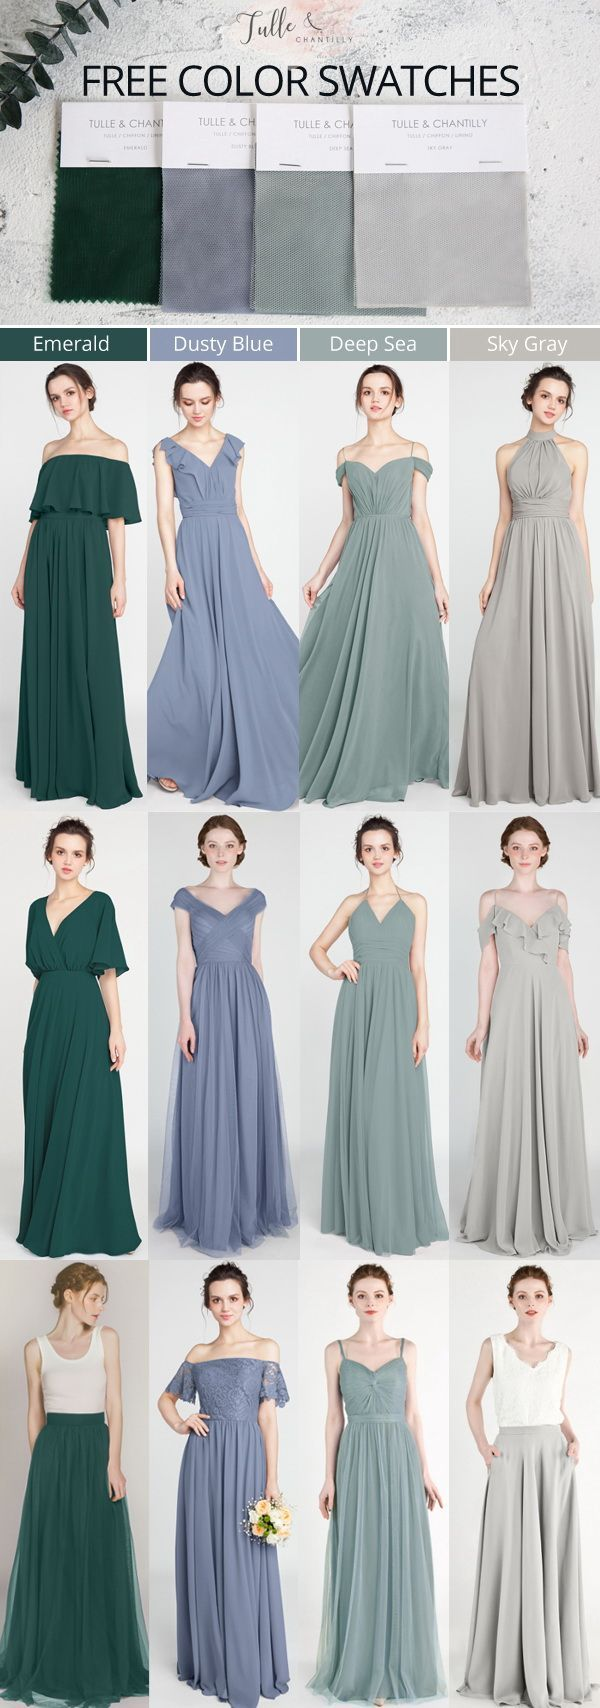 Lace dress with shorts underneath september 2019 Long u Short Bridesmaid Dresses From  in Size  and  Color